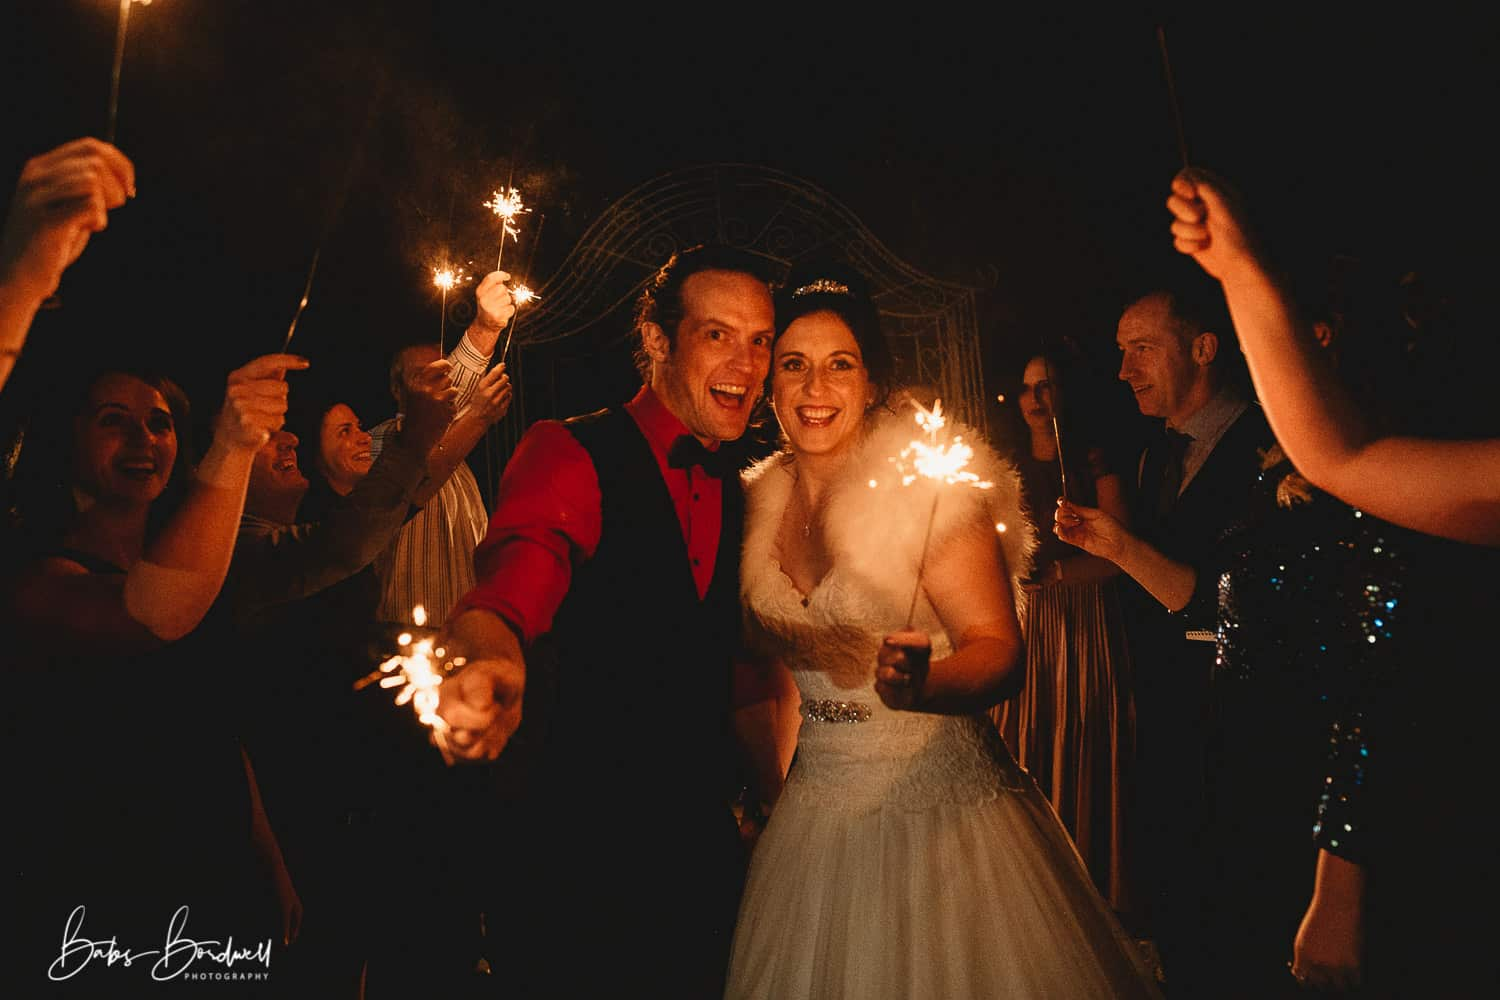 Babs Boardwell North Wales Wedding Photographer sparkler shot with bridal couple looking into the camera